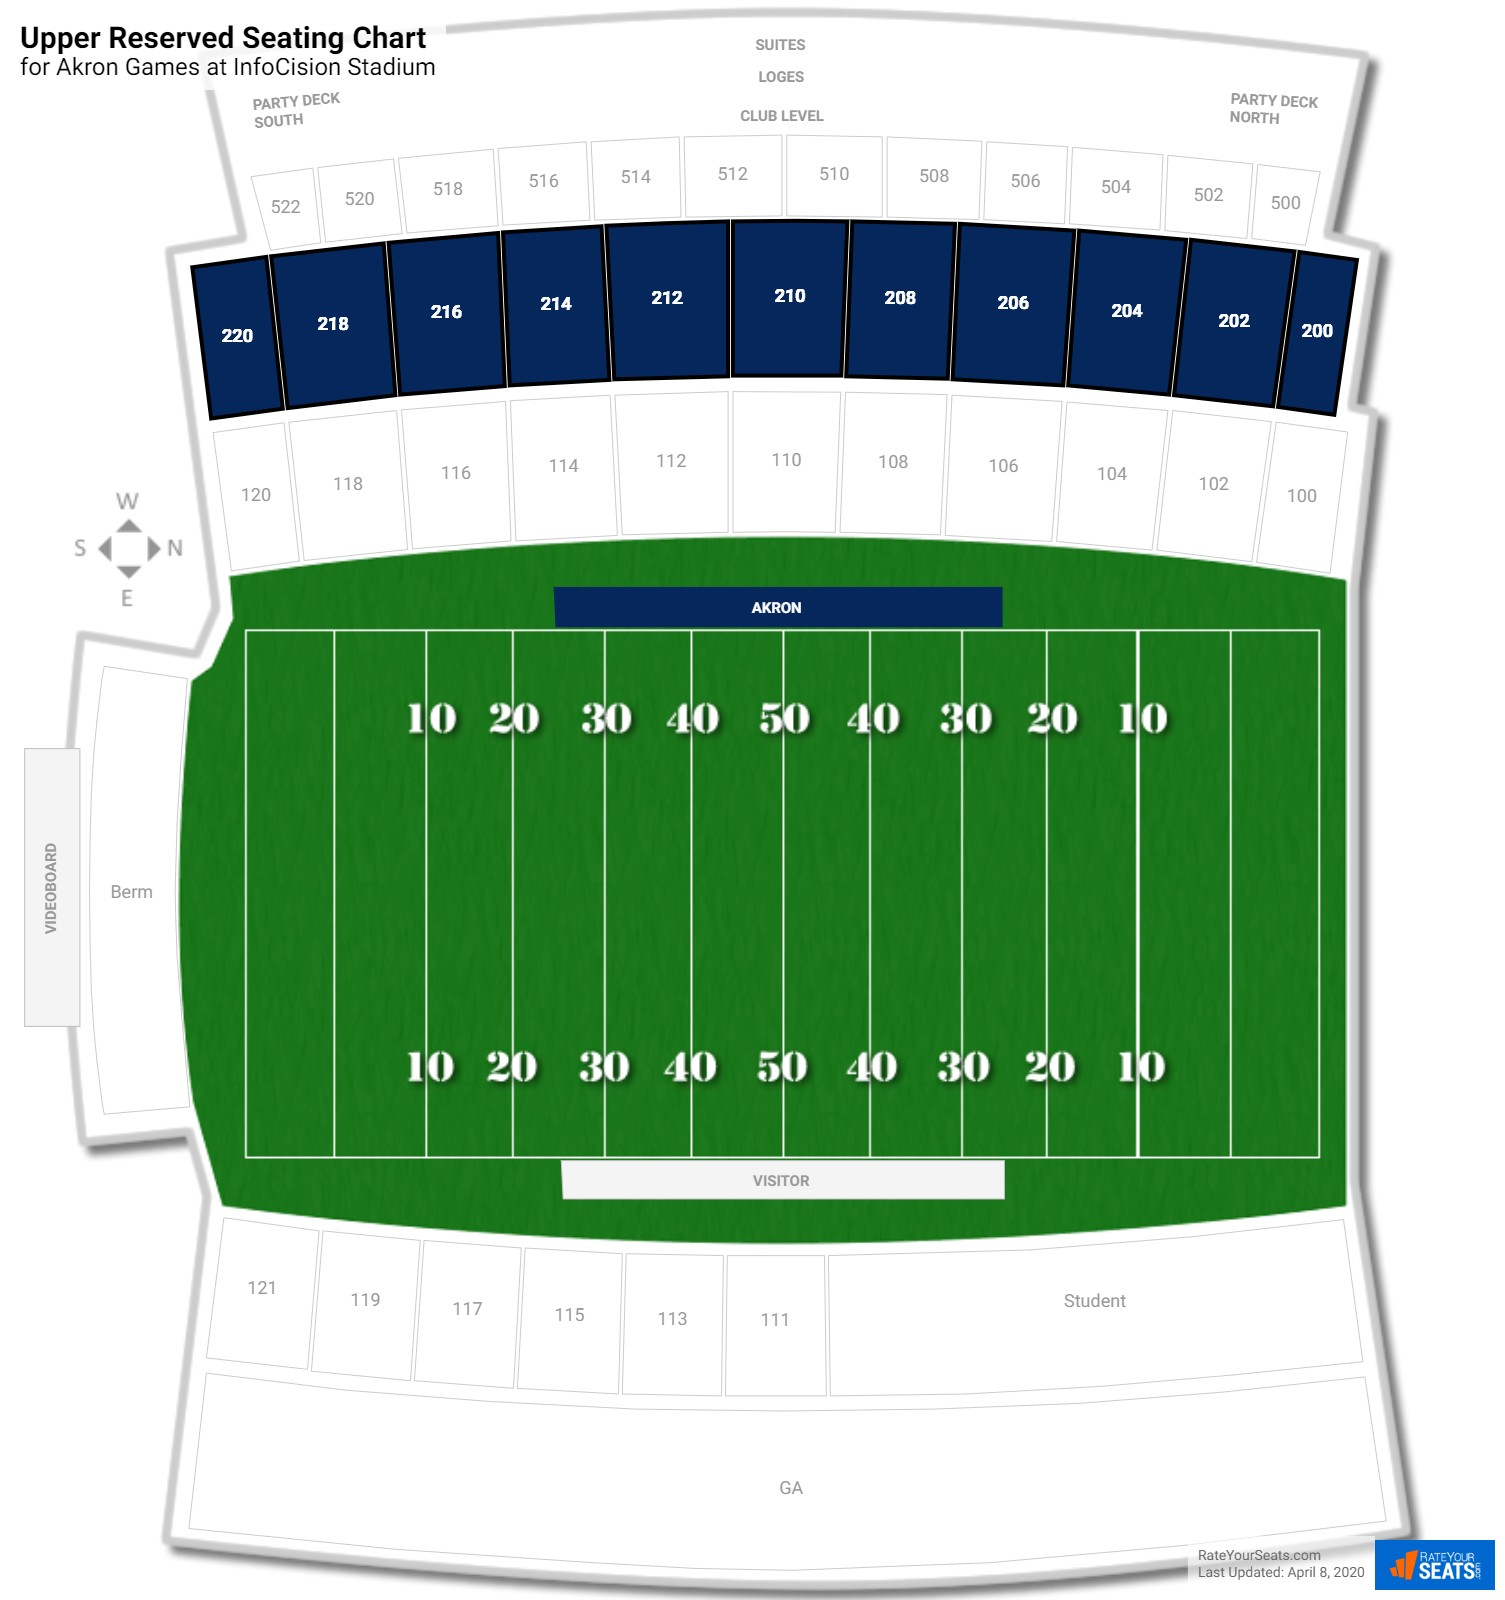 InfoCision Stadium Upper Reserved seating chart